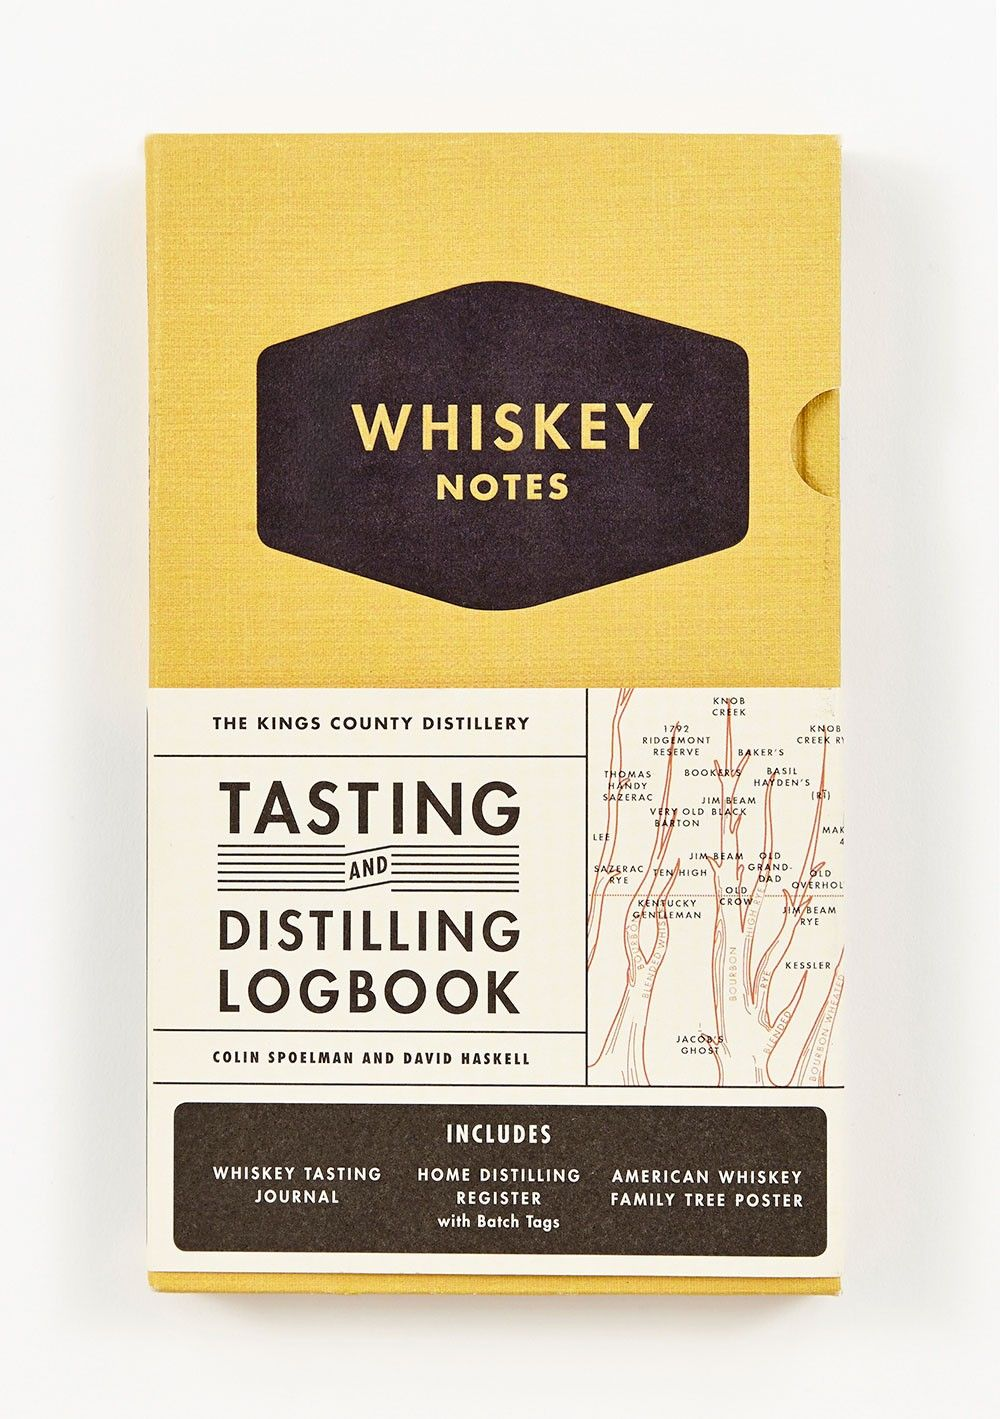 The Kings County Distillery: Whiskey Notes